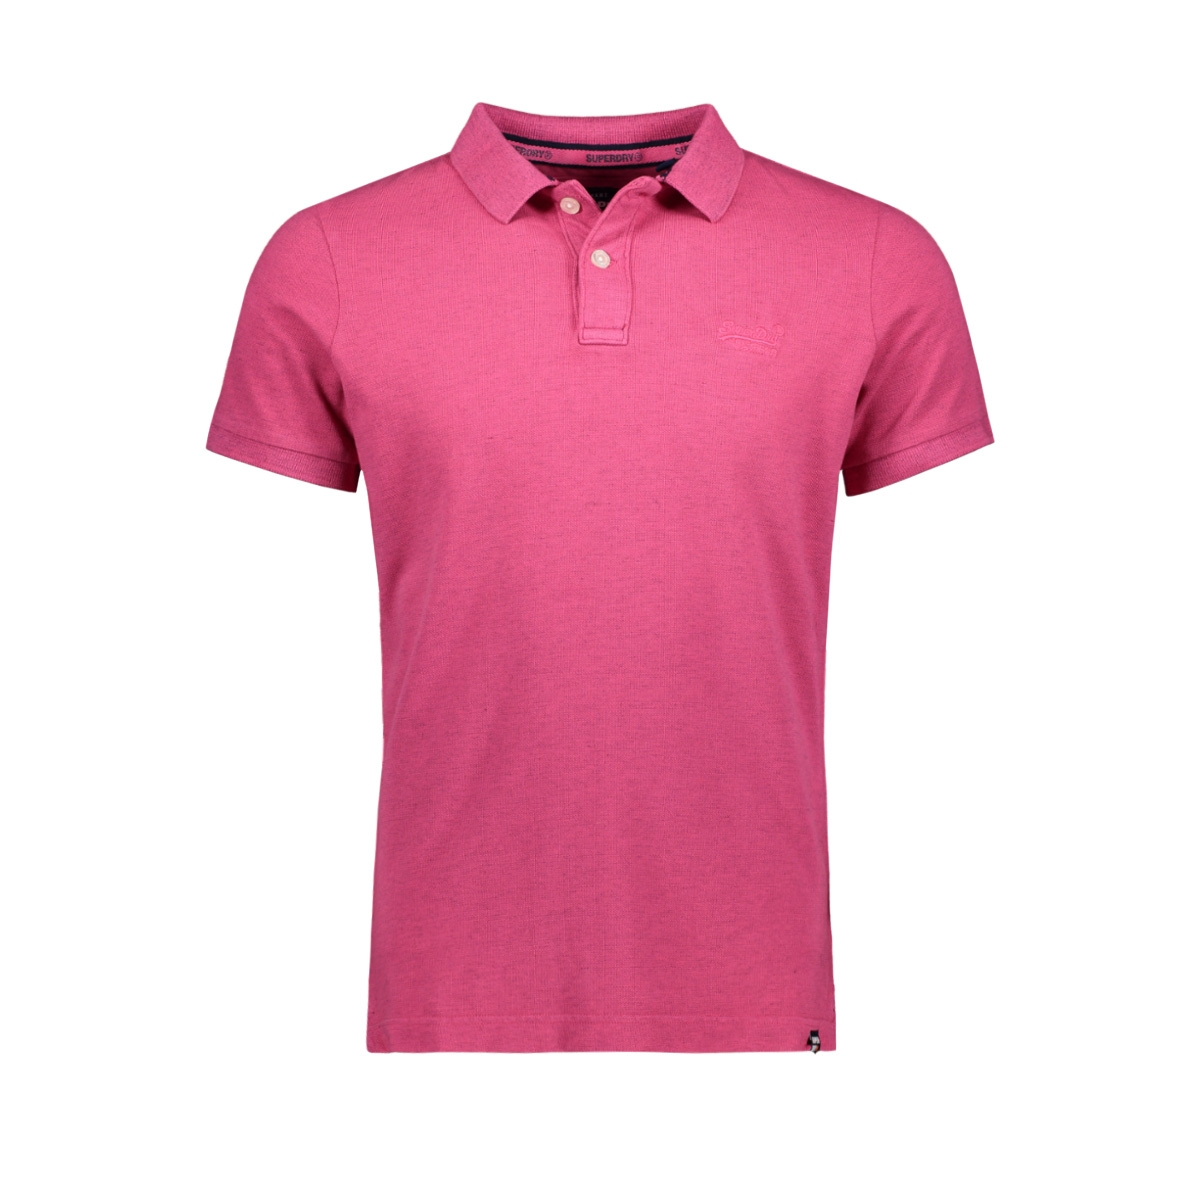 m11017rt superdry polo florida pink marl